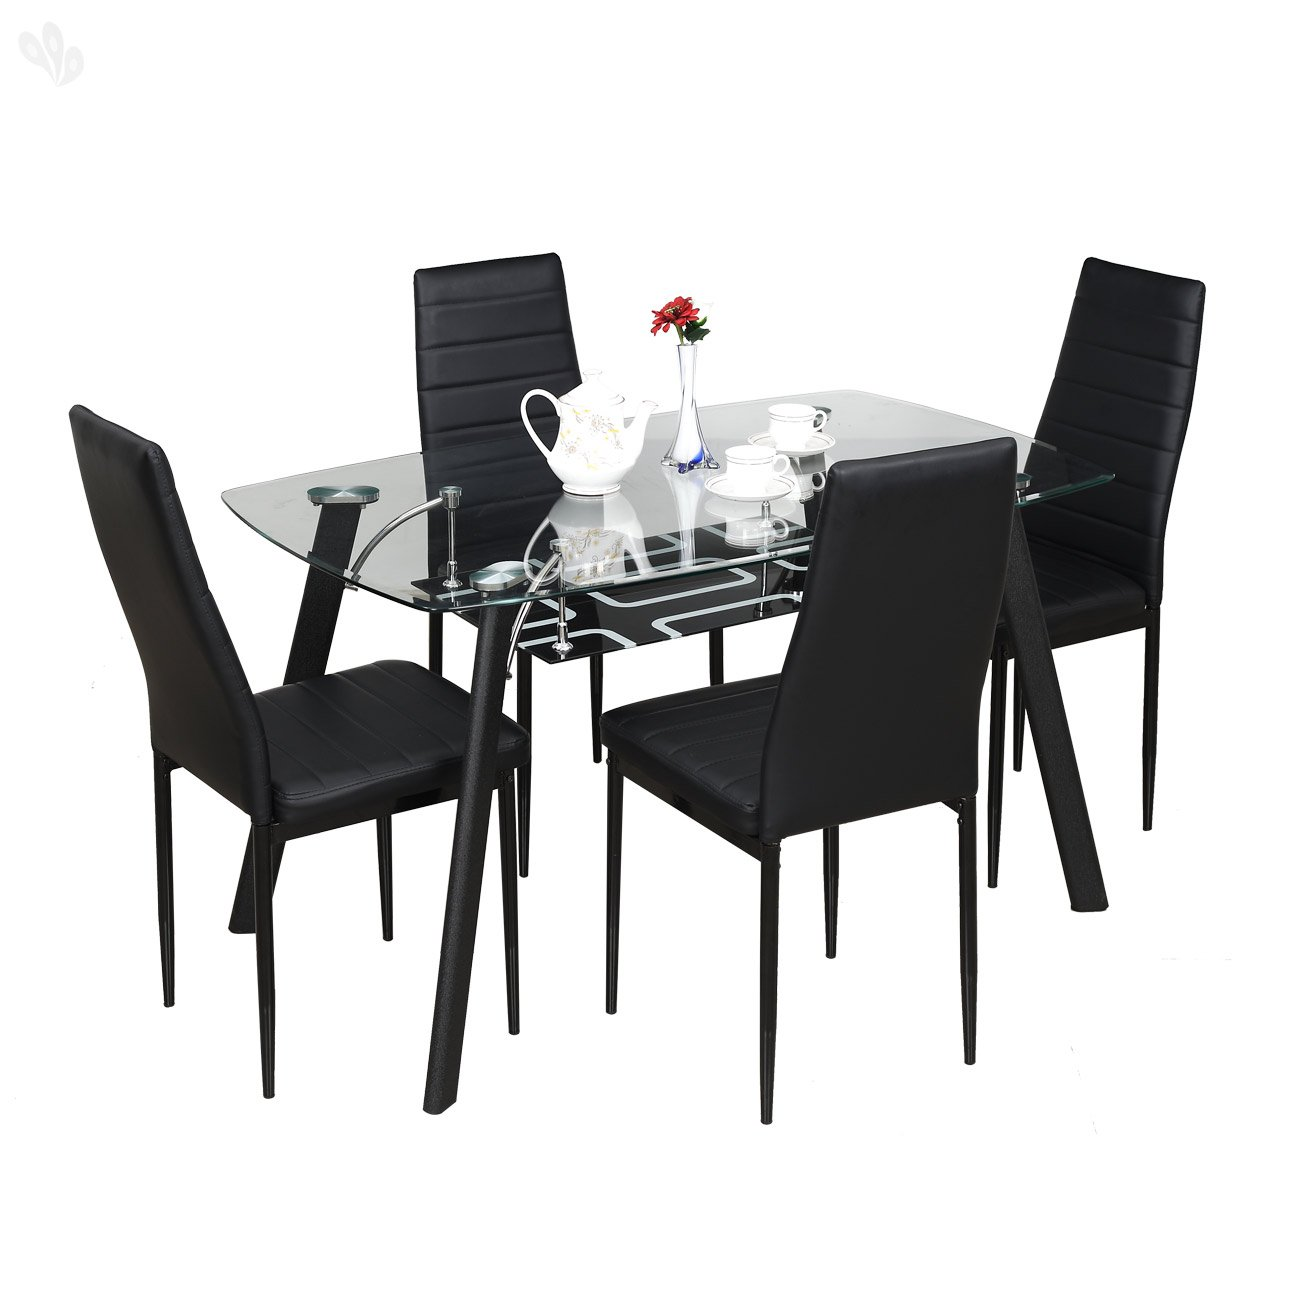 Royal Oak Milan Four Seater Dining Table Set Black Where Can I Buy The Be